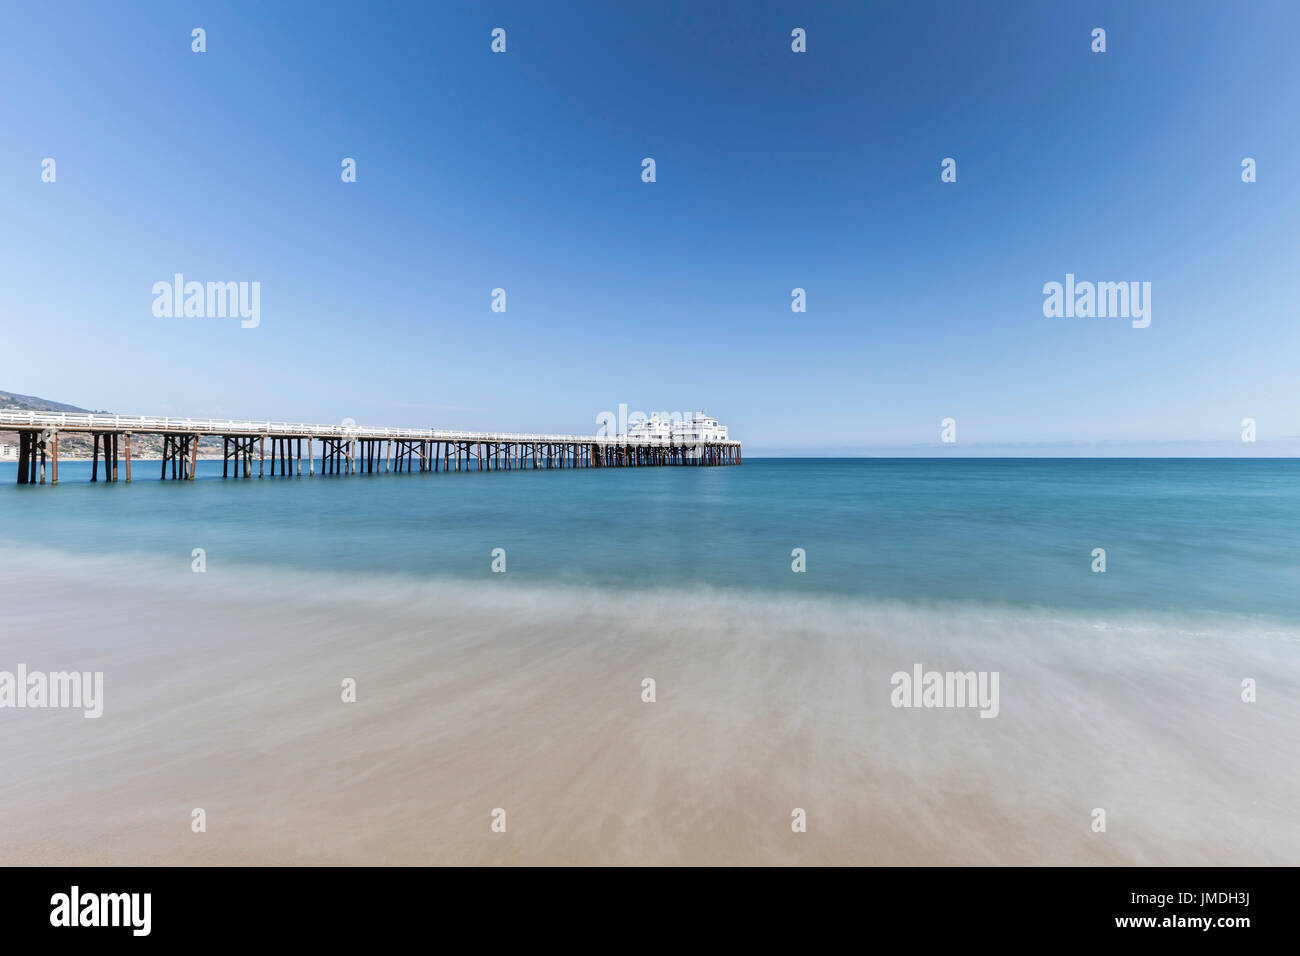 Malibu Pier with motion blur water near Los Angeles in Southern California. - Stock Image